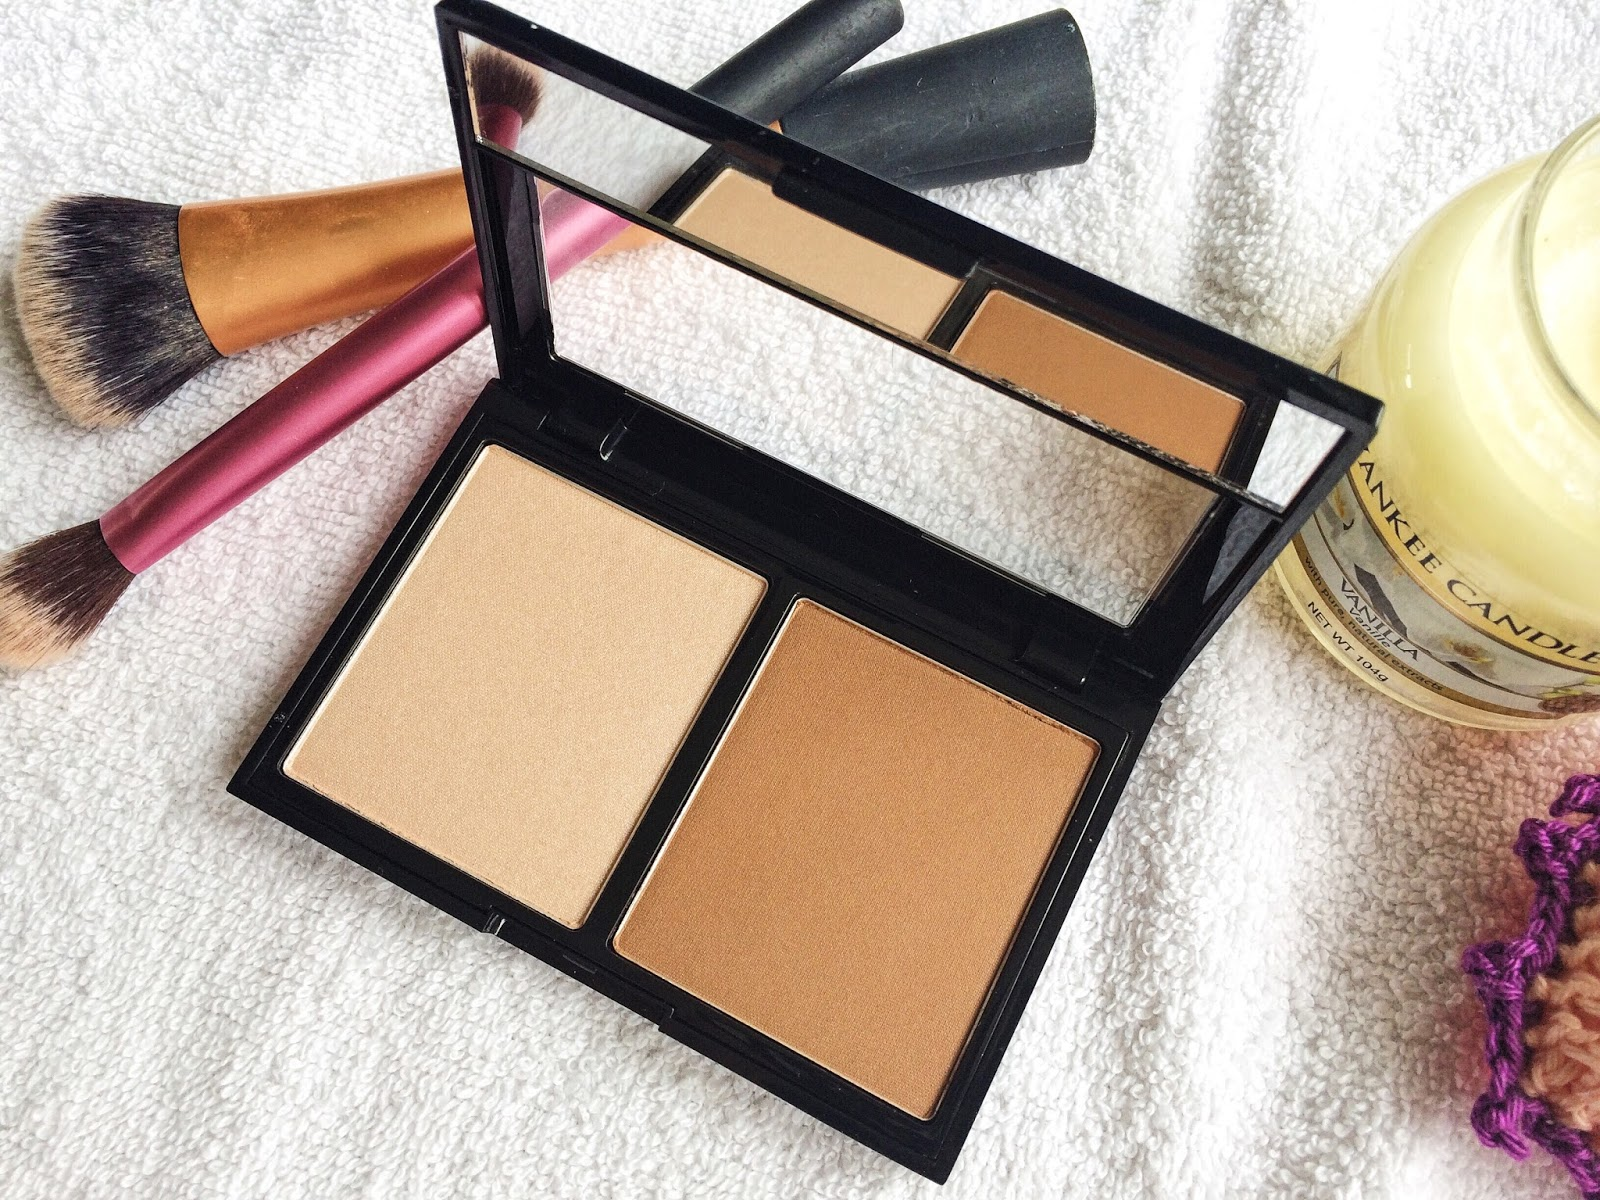 Contour away with this collection duo